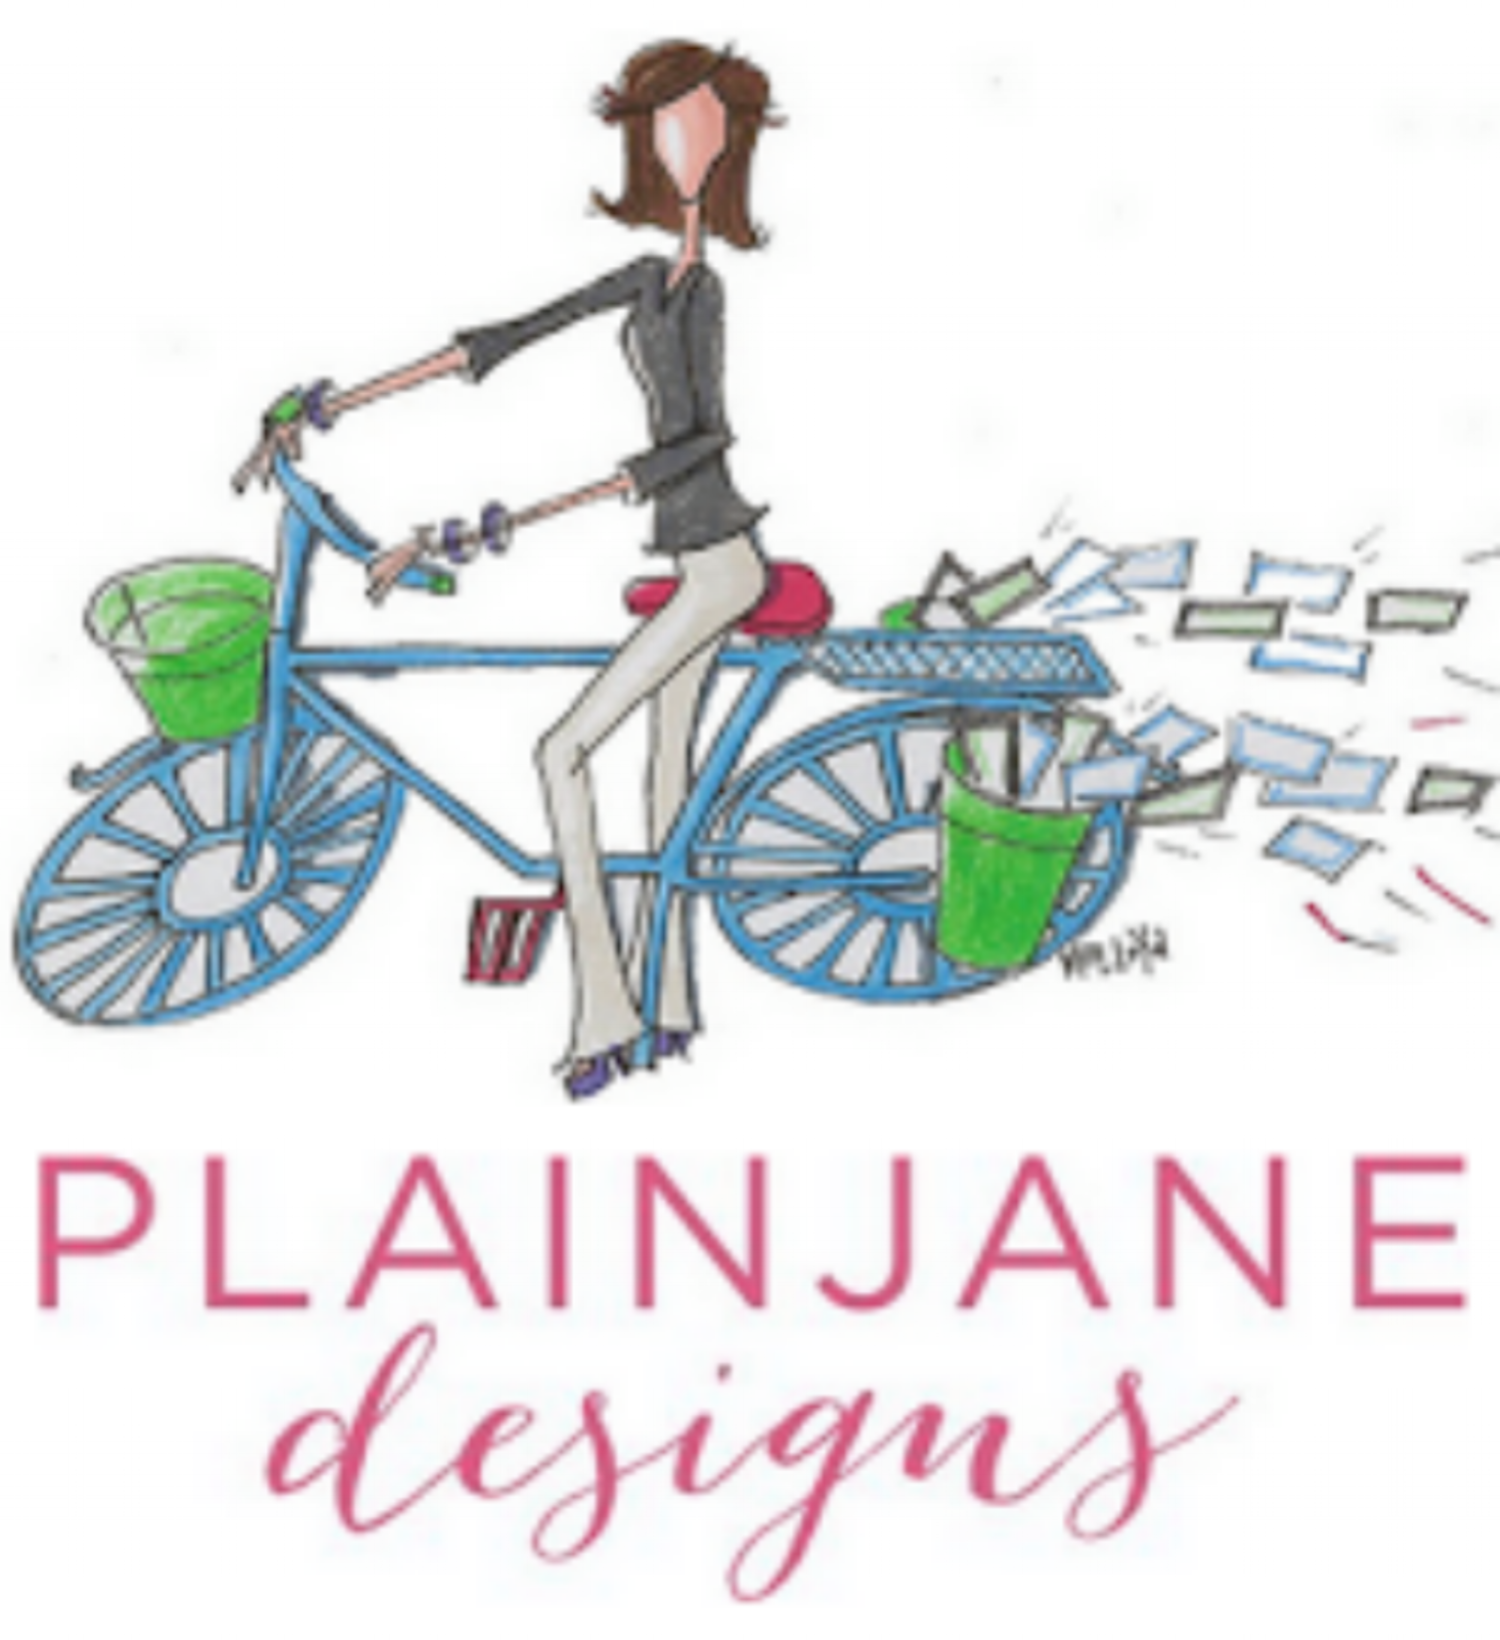 plainjane designs